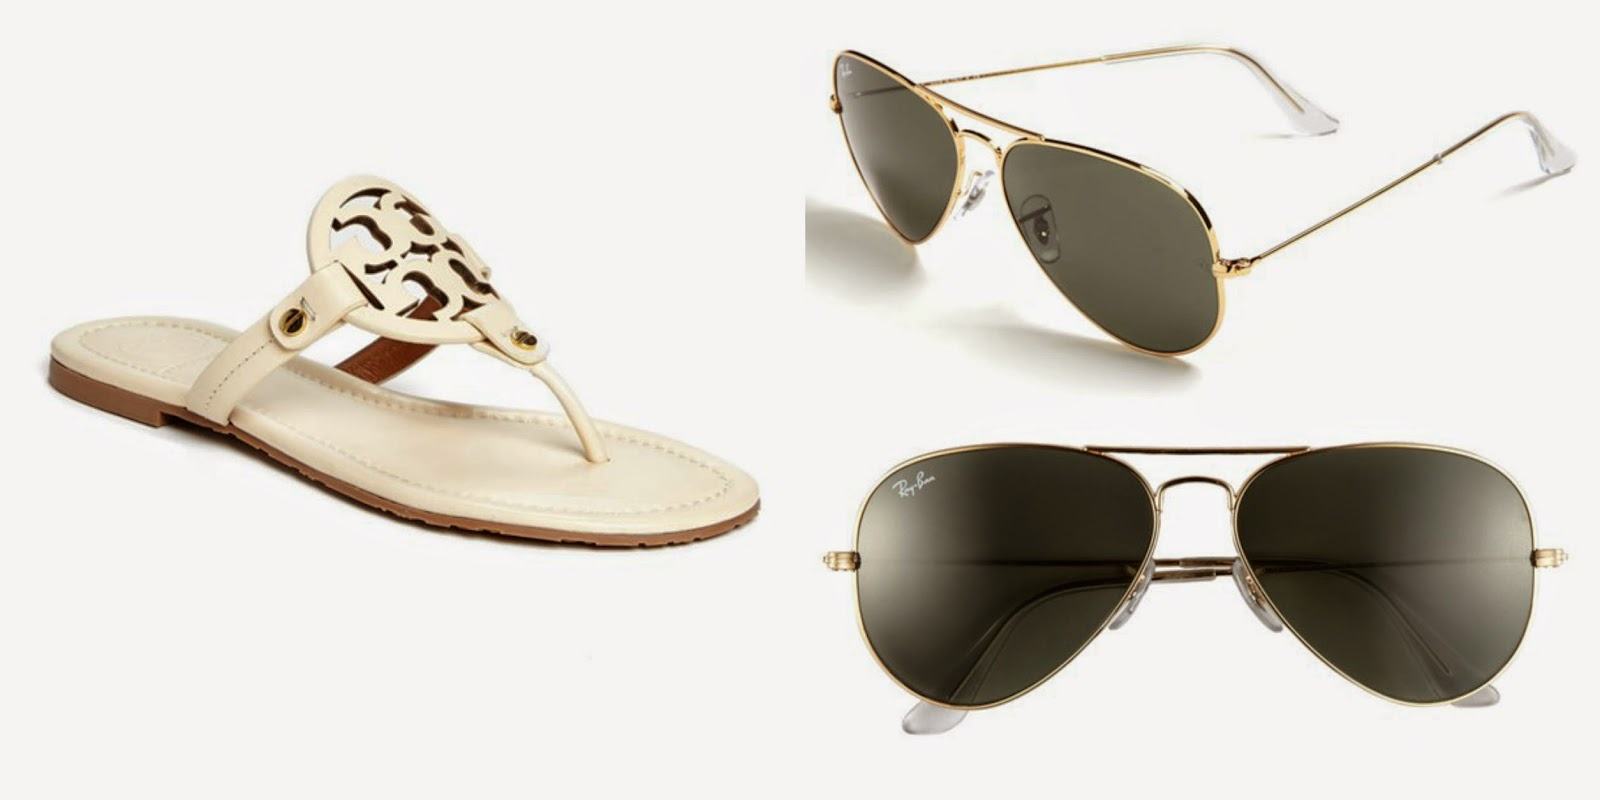 tory burch miller sandal on sale ray ban aviator on sale